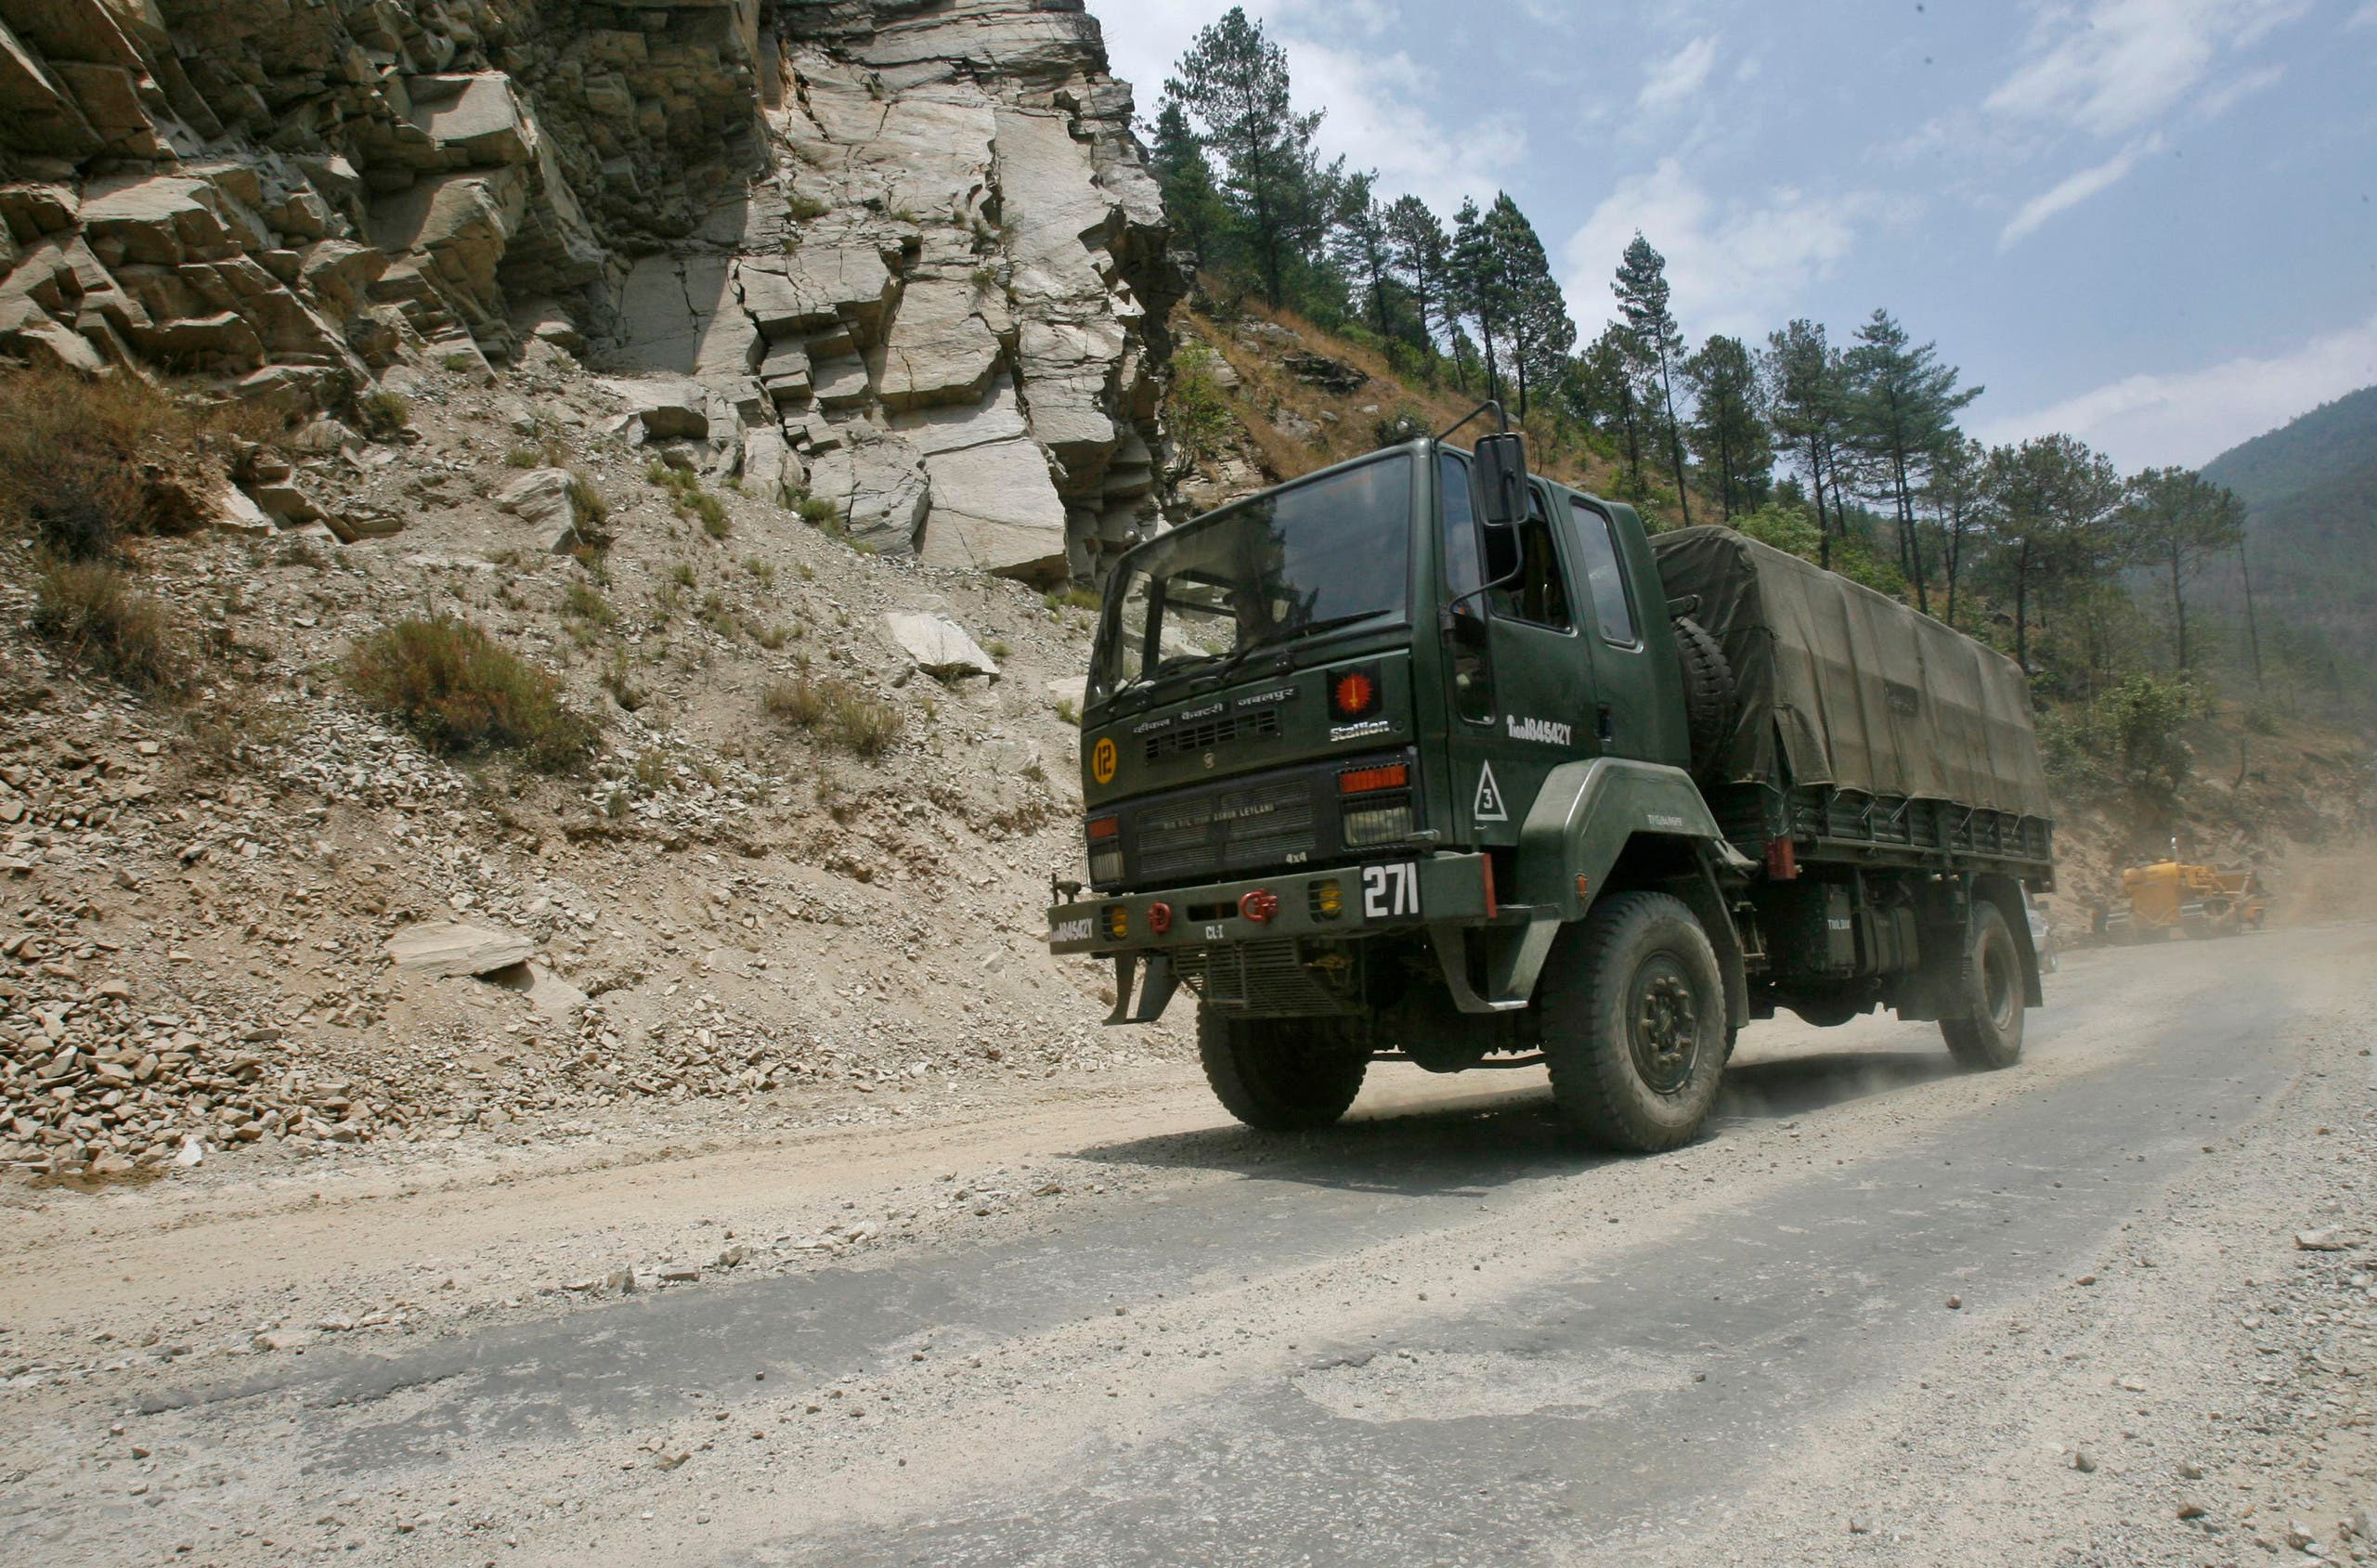 An Indian army truck drives along India's Tezpur-Tawang highway, which runs to the Chinese border, in the northeastern Indian state of Arunachal Pradesh in India. (Reuters)